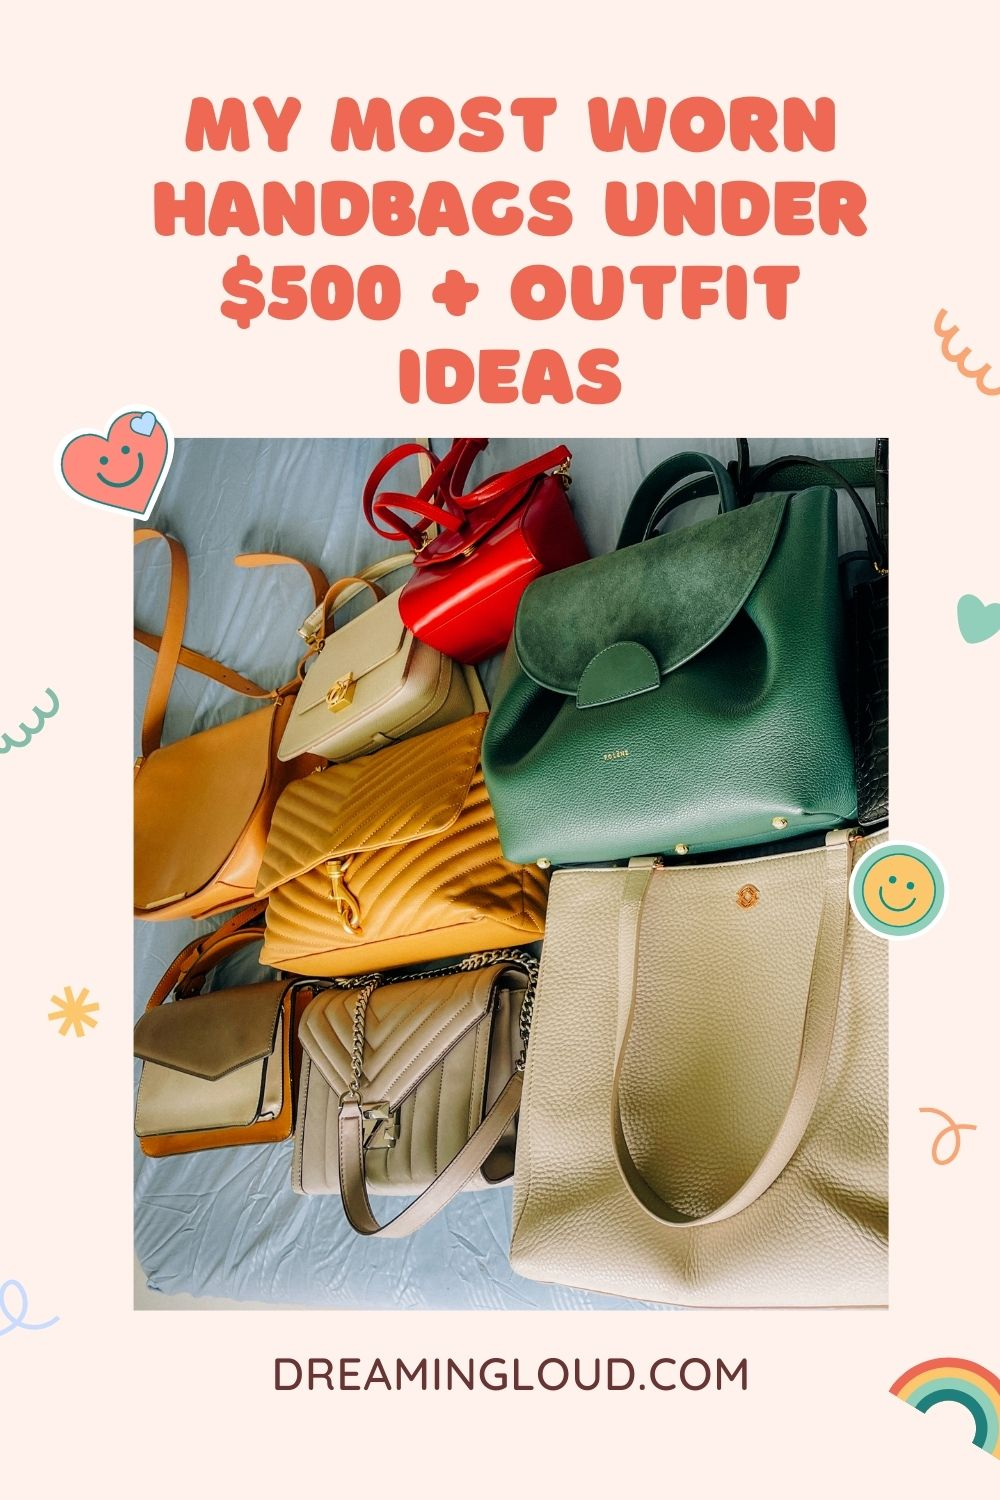 IG Live- My Most Worn Handbags Under $500 With Outfit Inspiration | Handbags Under $500 by popular Maryland modest fashion blog, Dreaming Loud: Pinterest image of handbags under $500.